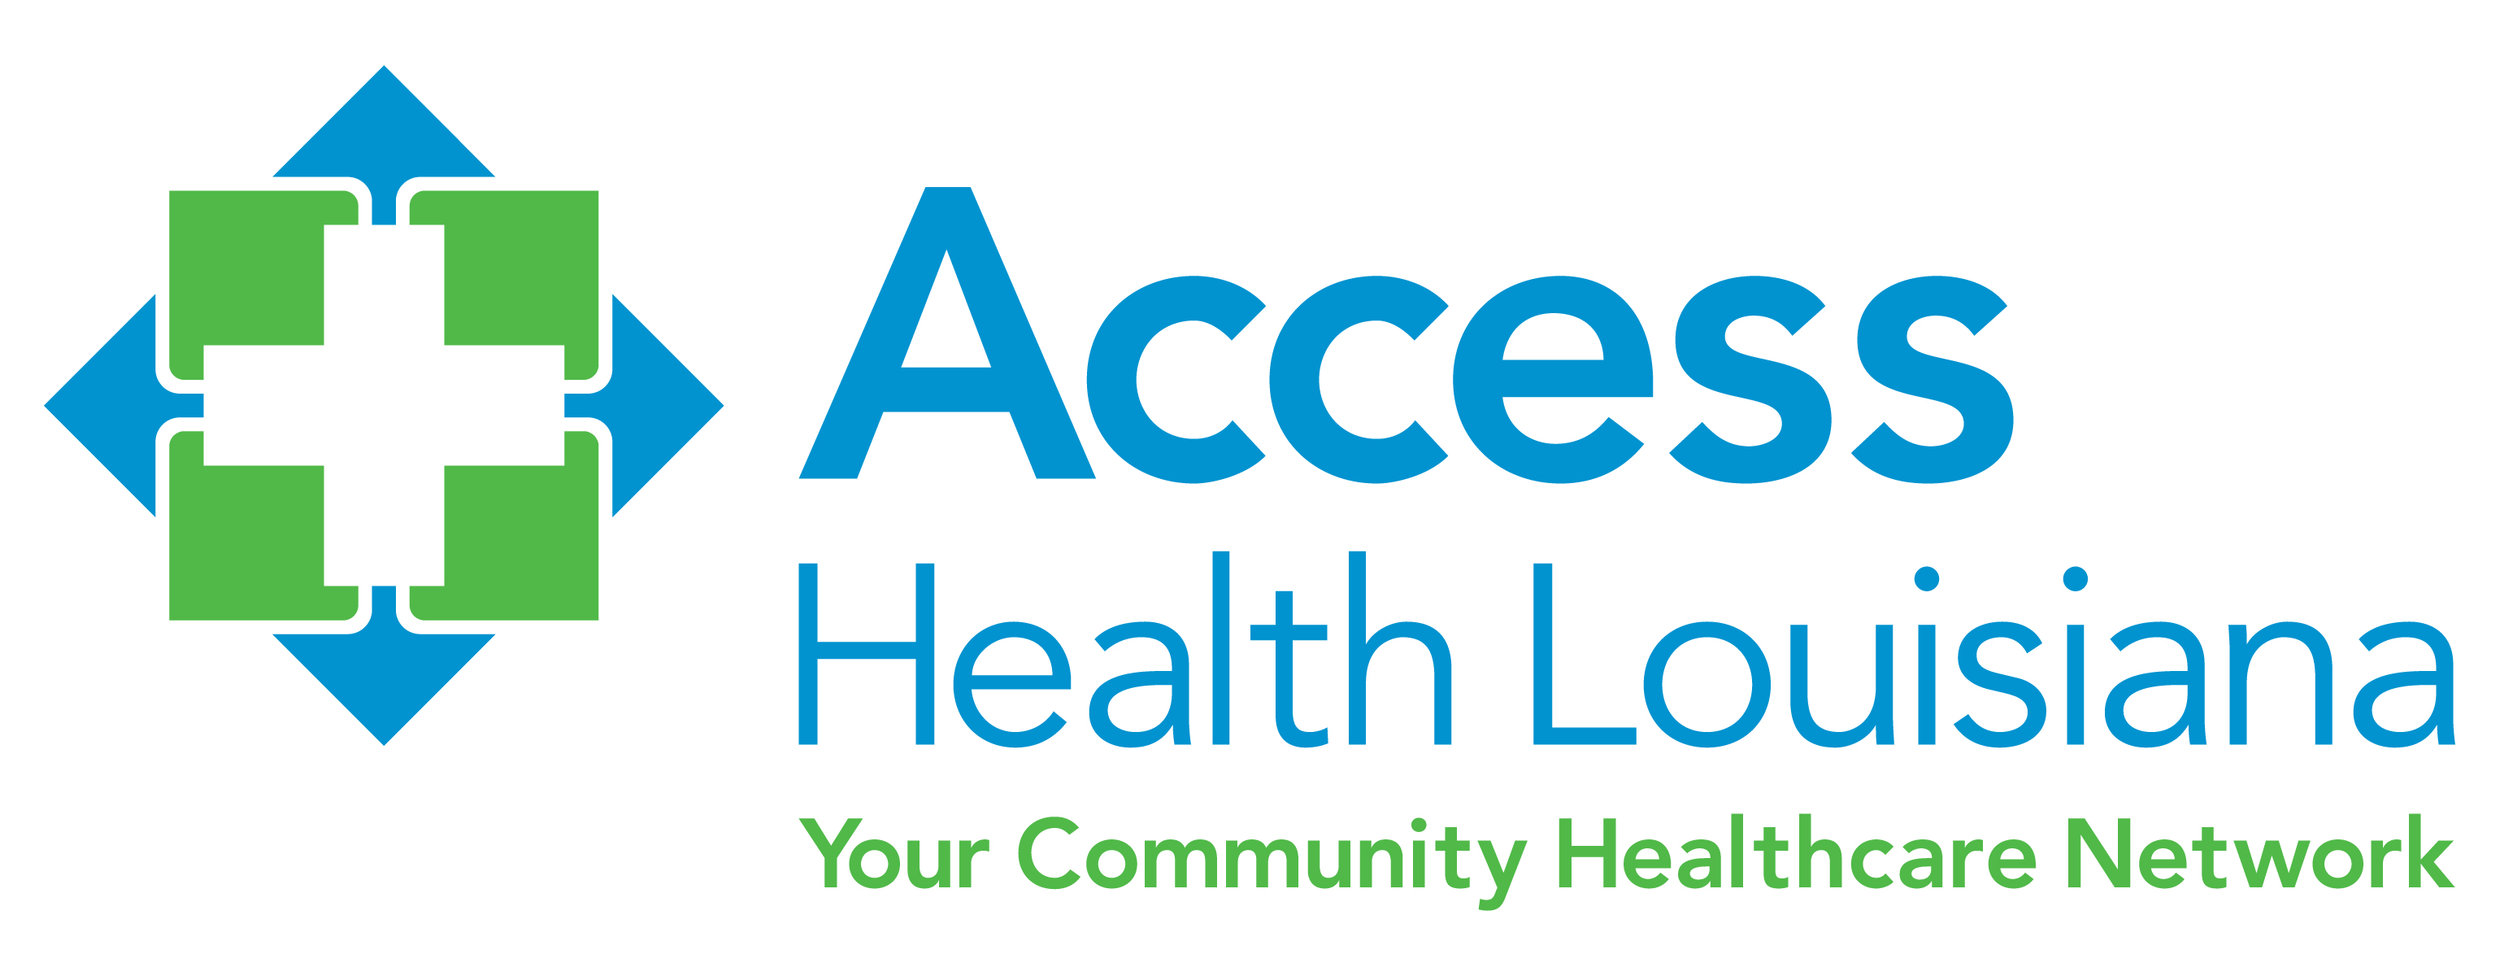 Access Health Color Logo.jpg